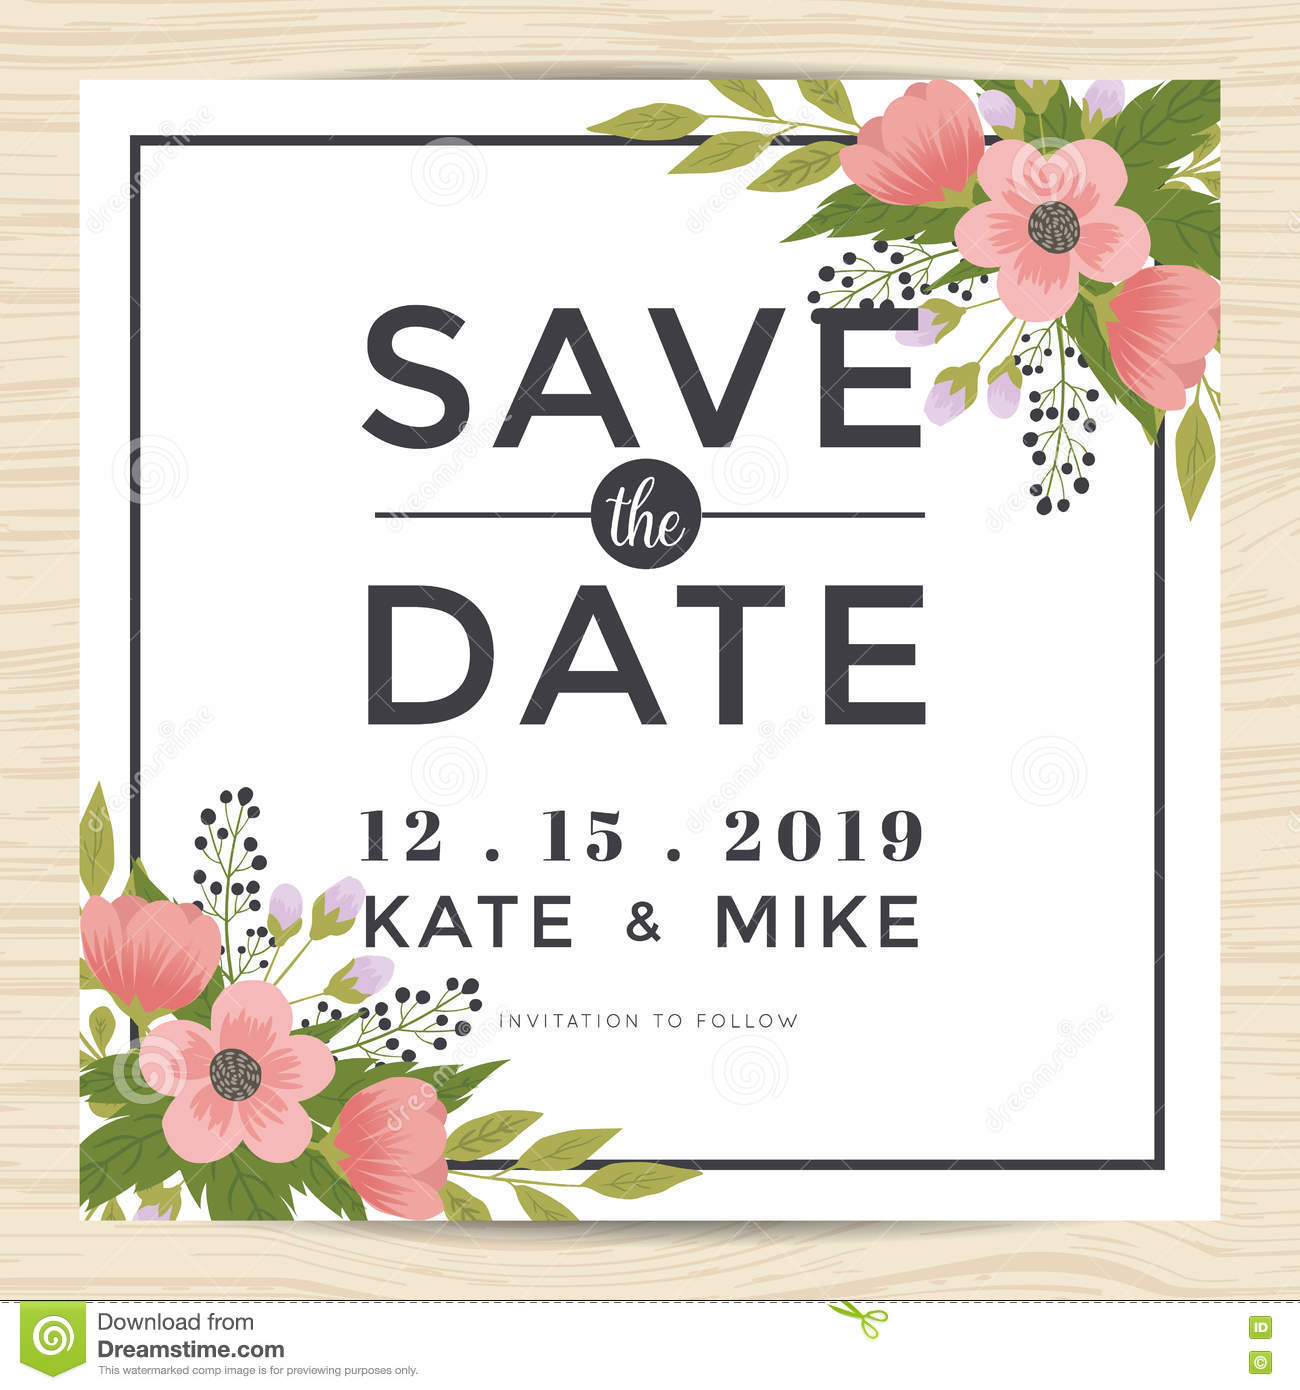 Save the date wedding invitation card template with for Vintage save the date templates free